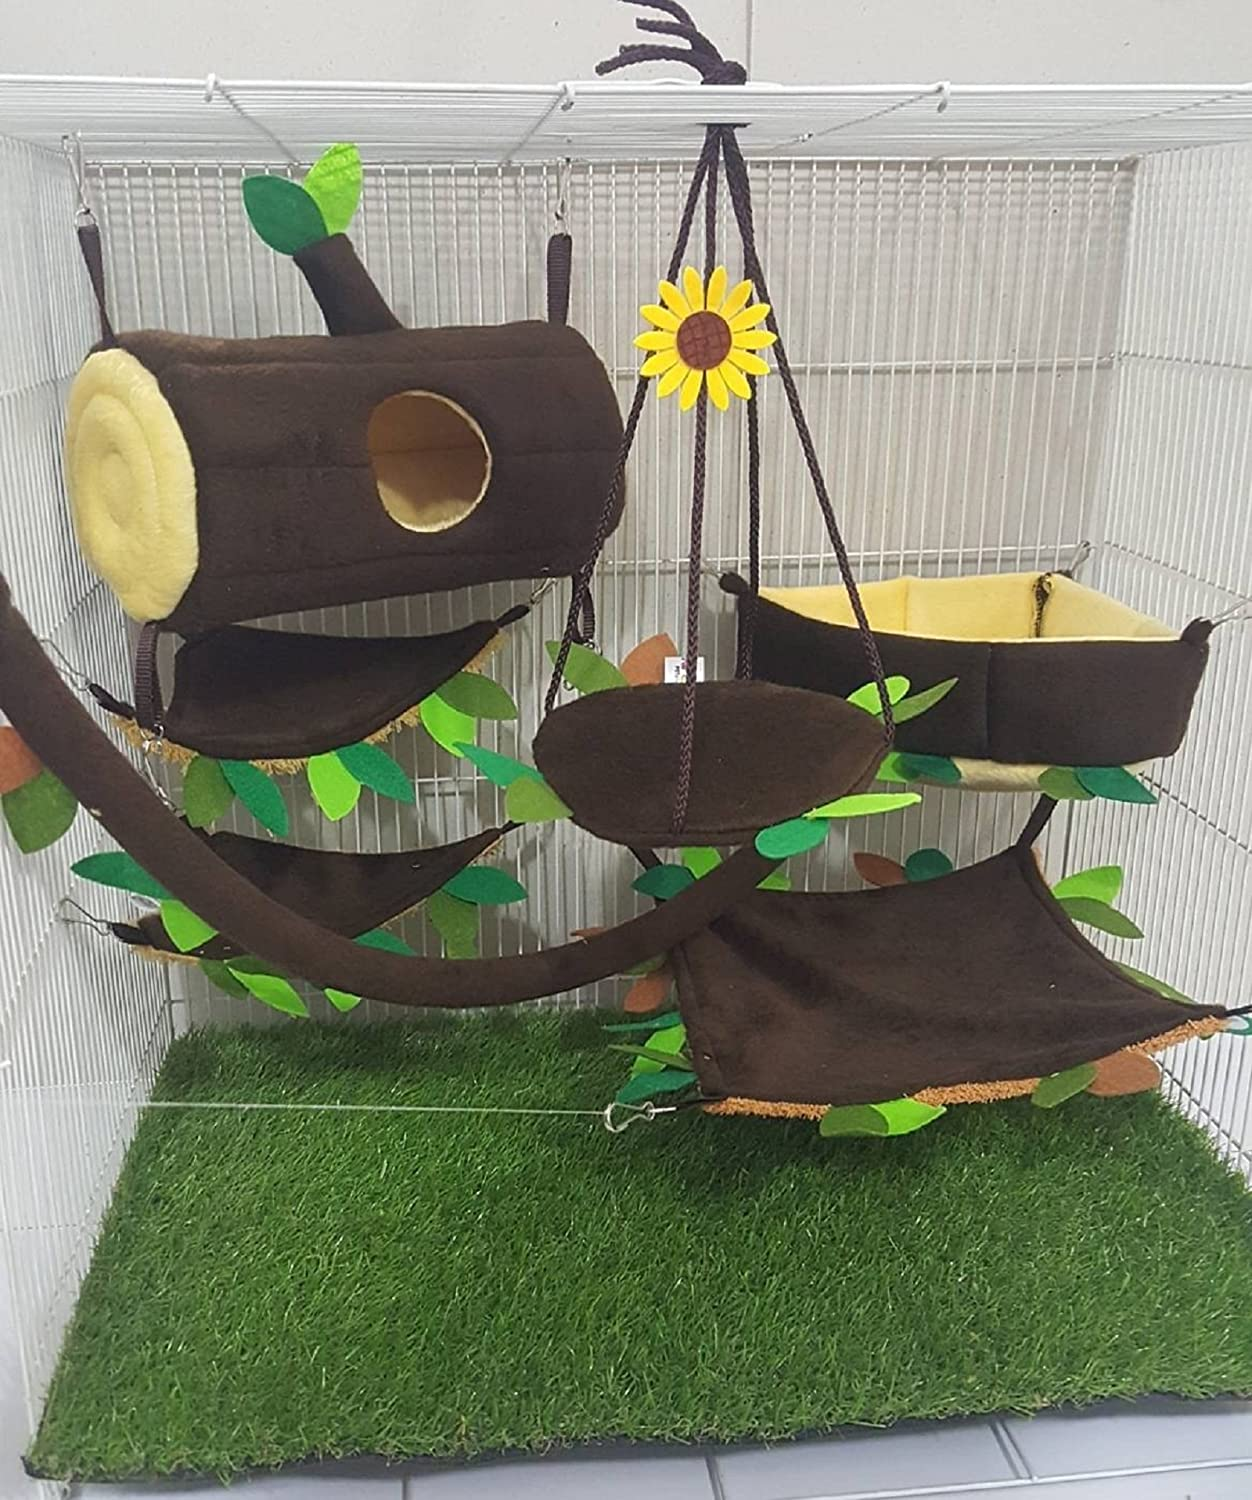 HOT! 7 Pcs/Set Cute Sugar Glider Hamster Marmoset Squirrel Chinchillas Small Pet Hanging Log + Edge Corner Dark Brown Cage Set Forest Pattern Get Free 1 Small Pet Treats, PB's REPUBLIX